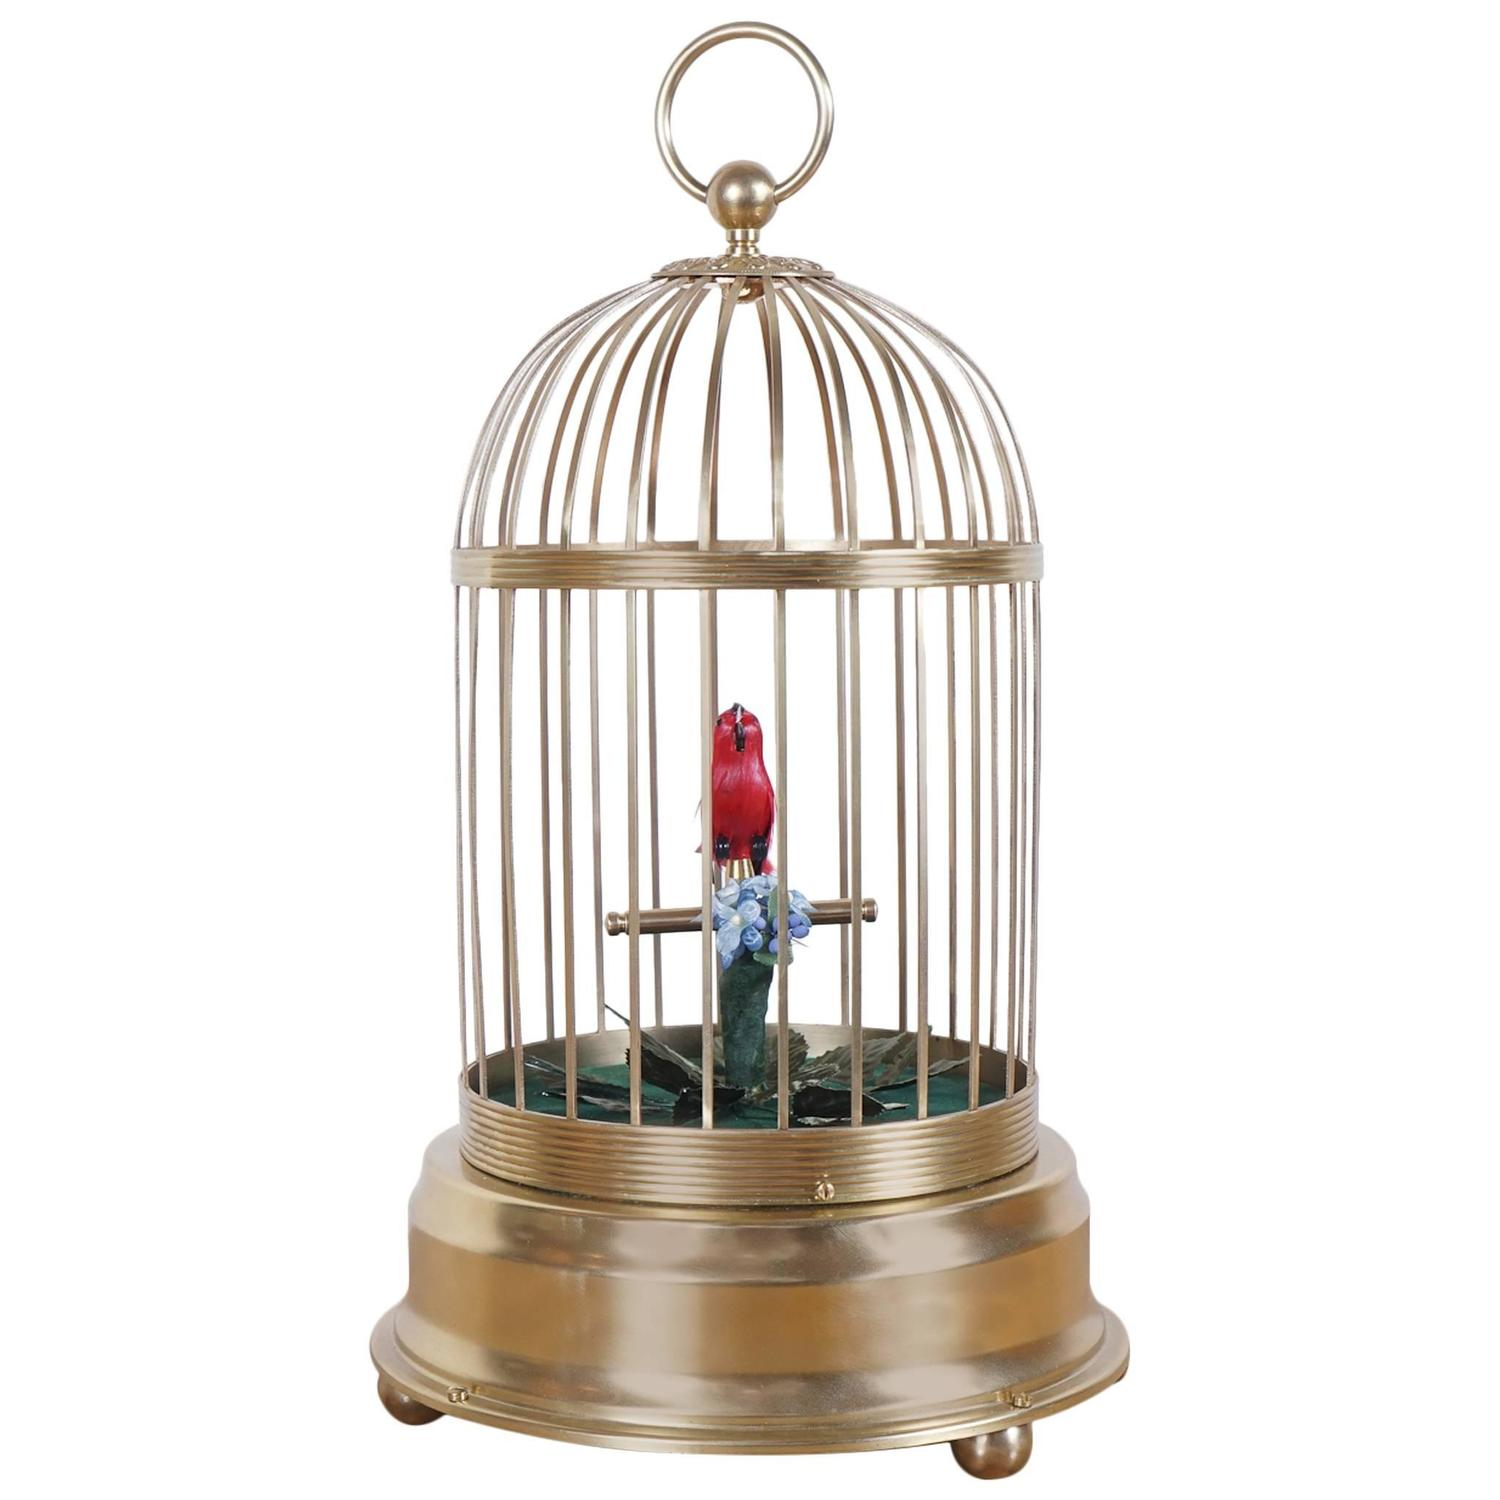 Old fashioned bird cages for sale 16